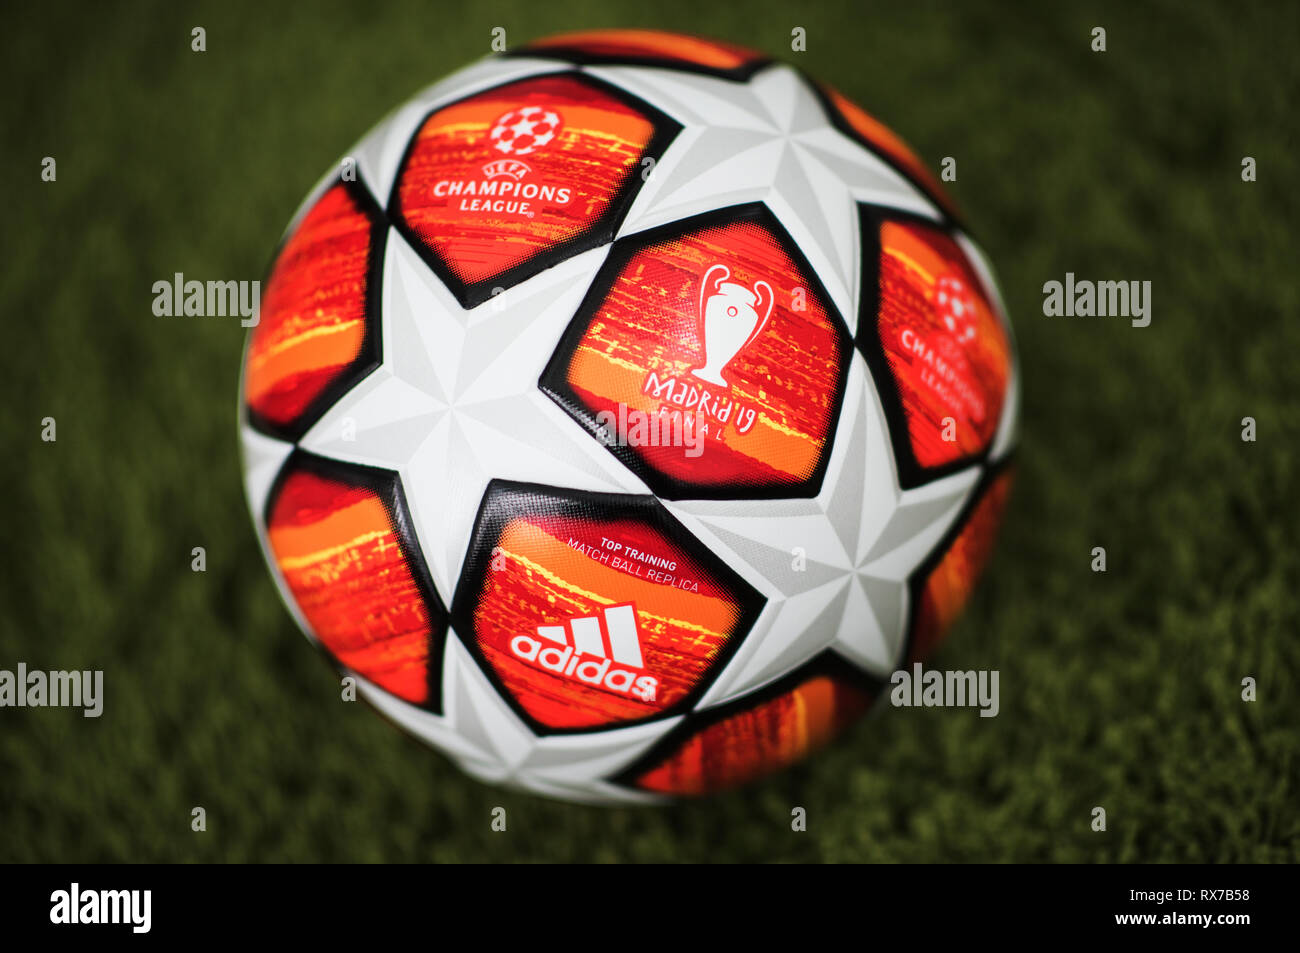 close up of adidas uefa champions league final football madrid 2019 stock photo alamy https www alamy com close up of adidas uefa champions league final football madrid 2019 image239878276 html